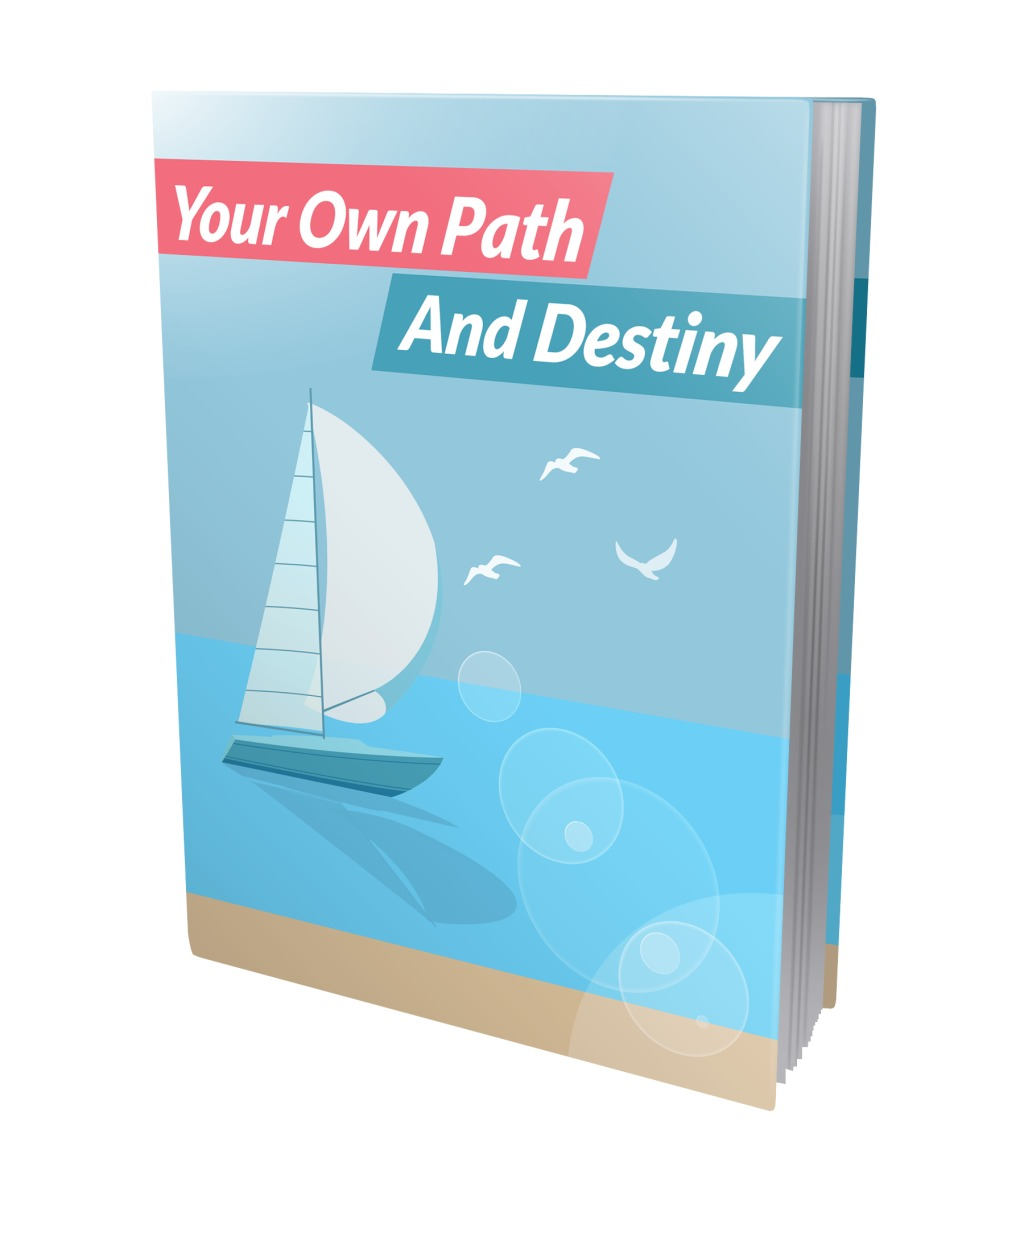 Your Own Path And Destiny